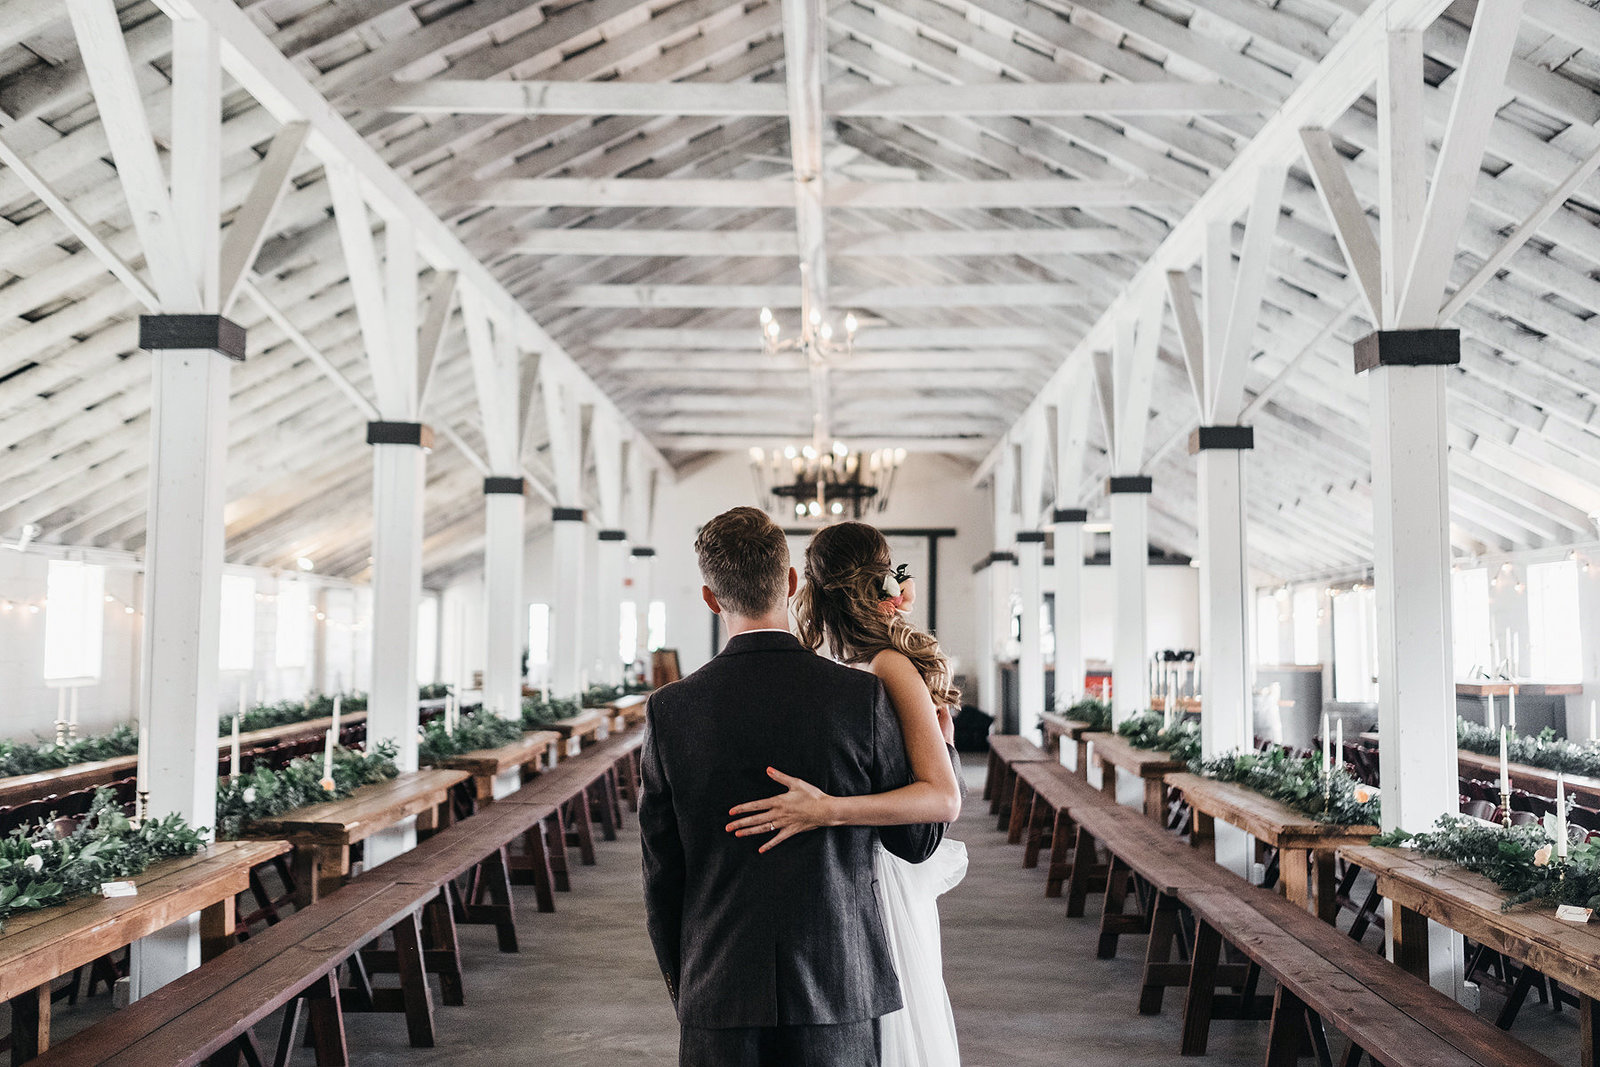 athena-and-camron-seattle-wedding-photographer-dairyland-snohomish-rustic-barn-wedding-flowers-styling-inspiration-lauren-madison-24